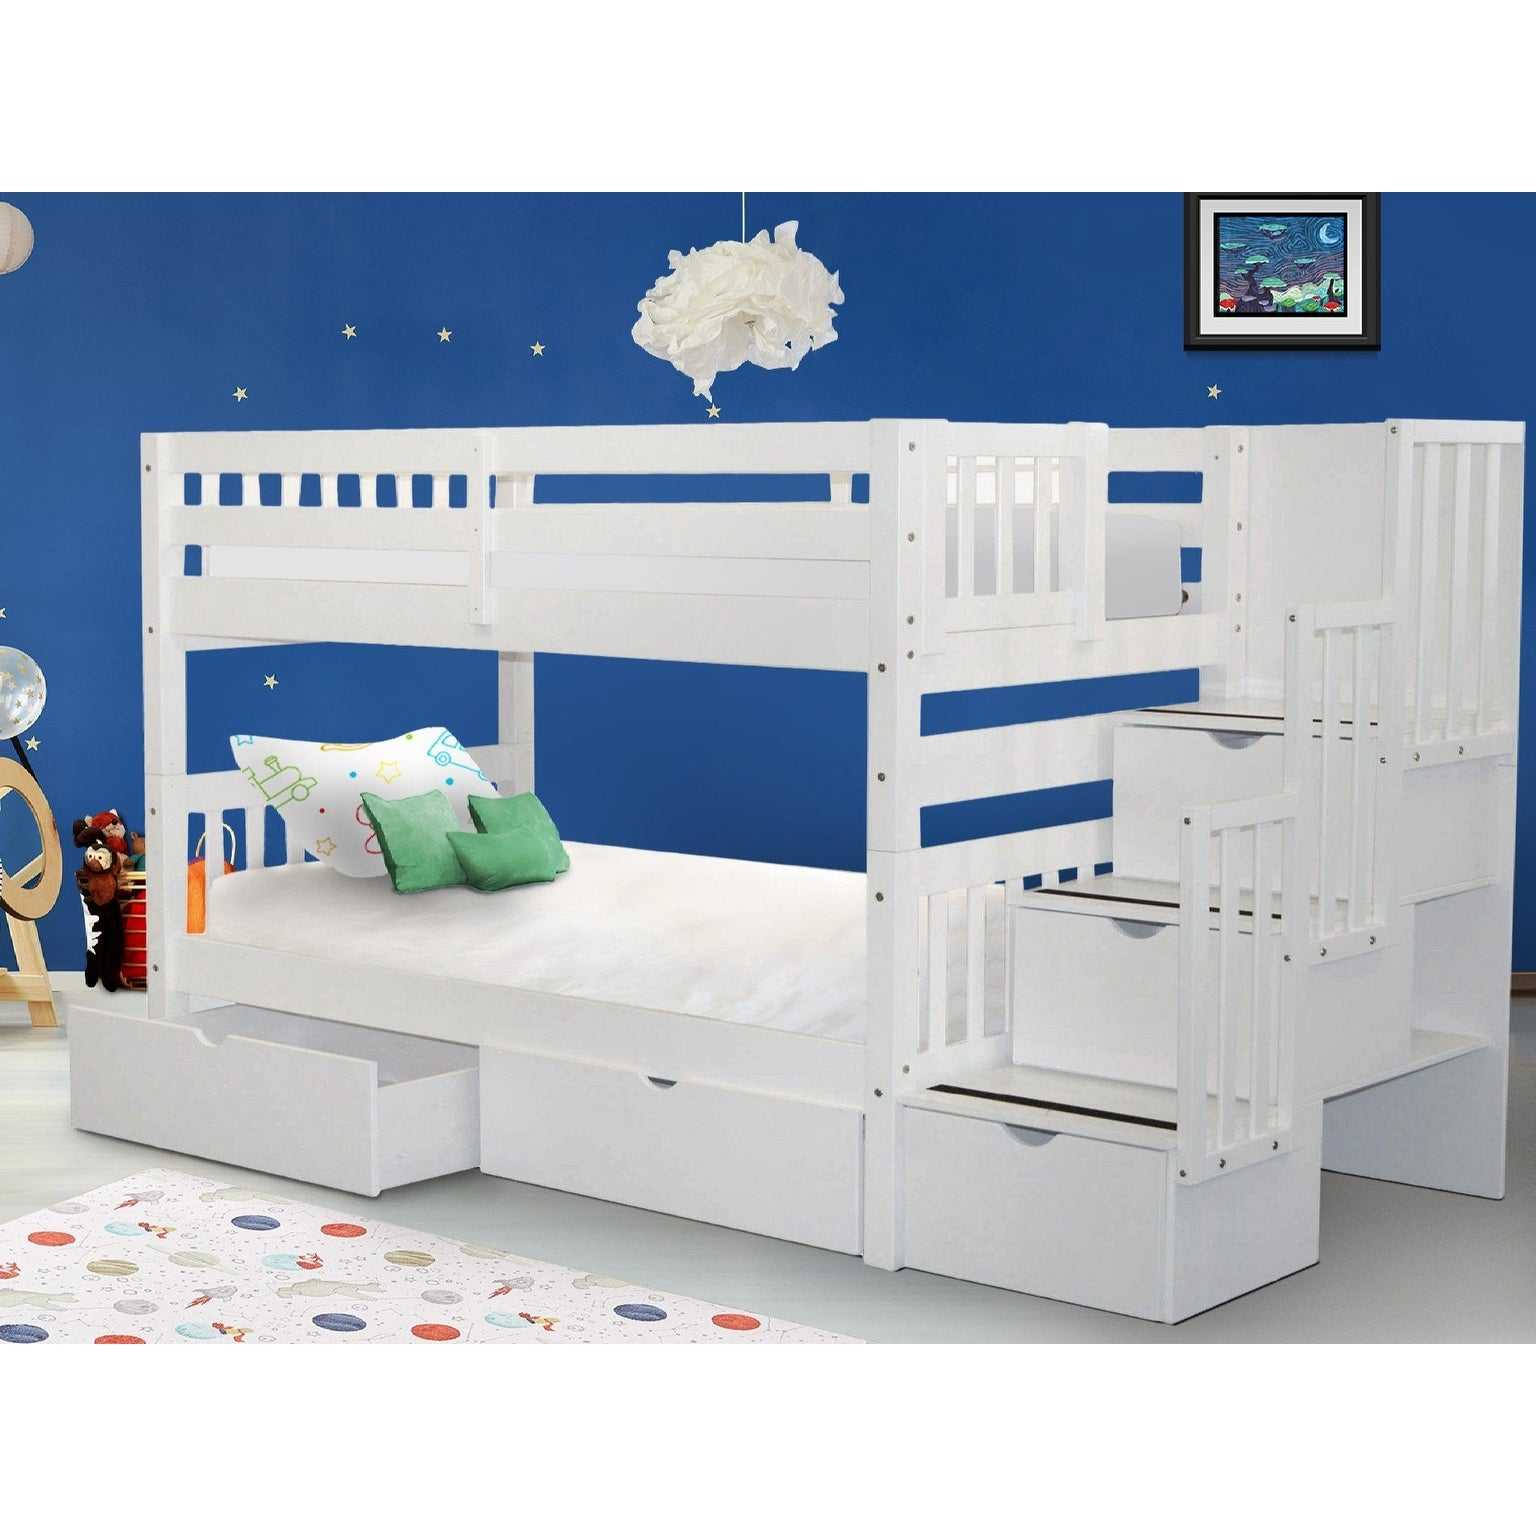 Picture of: Taylor Olive Trillium Twin Over Twin White Bunk Bed With Storage Drawers Overstock 14628142